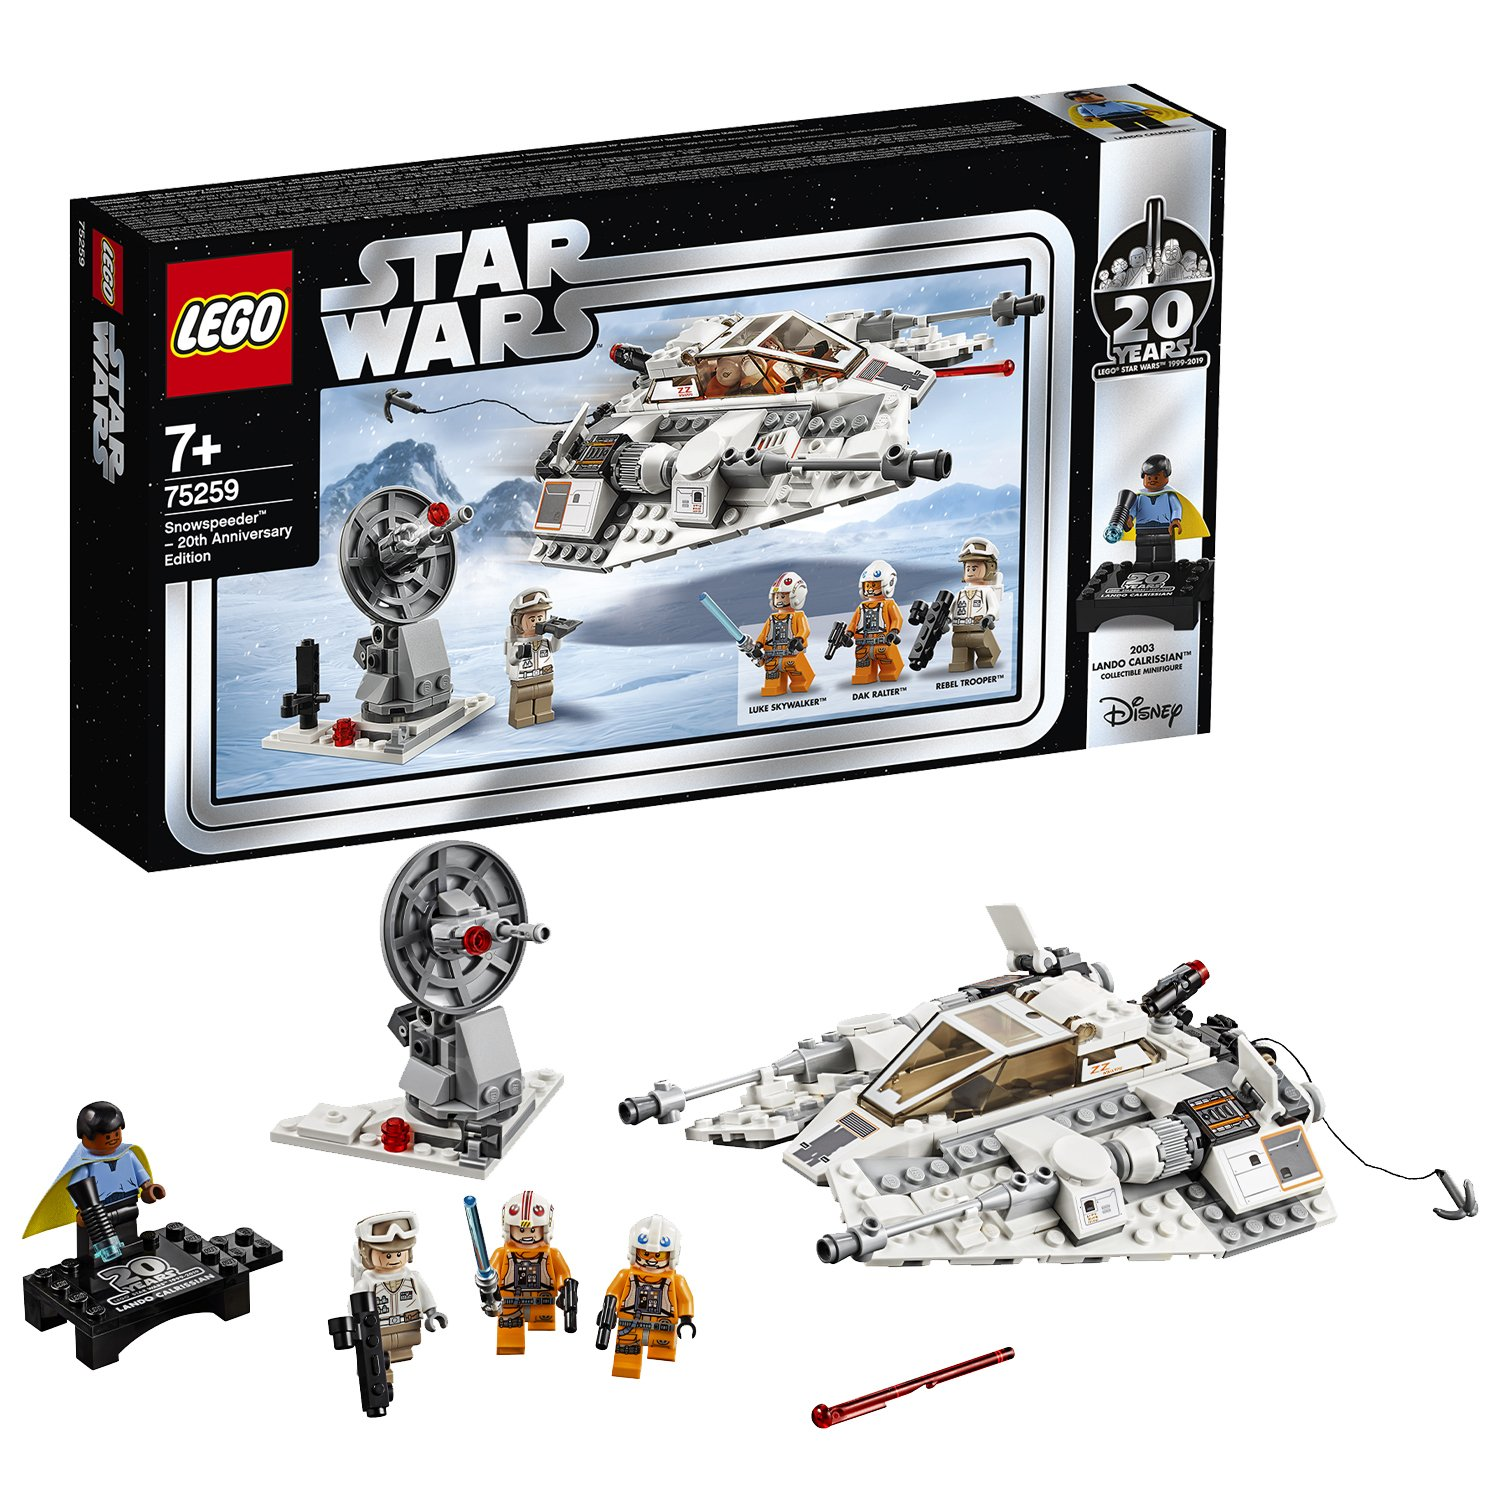 LEGO Star Wars 20th Anniversary Snowspeeder - 75259